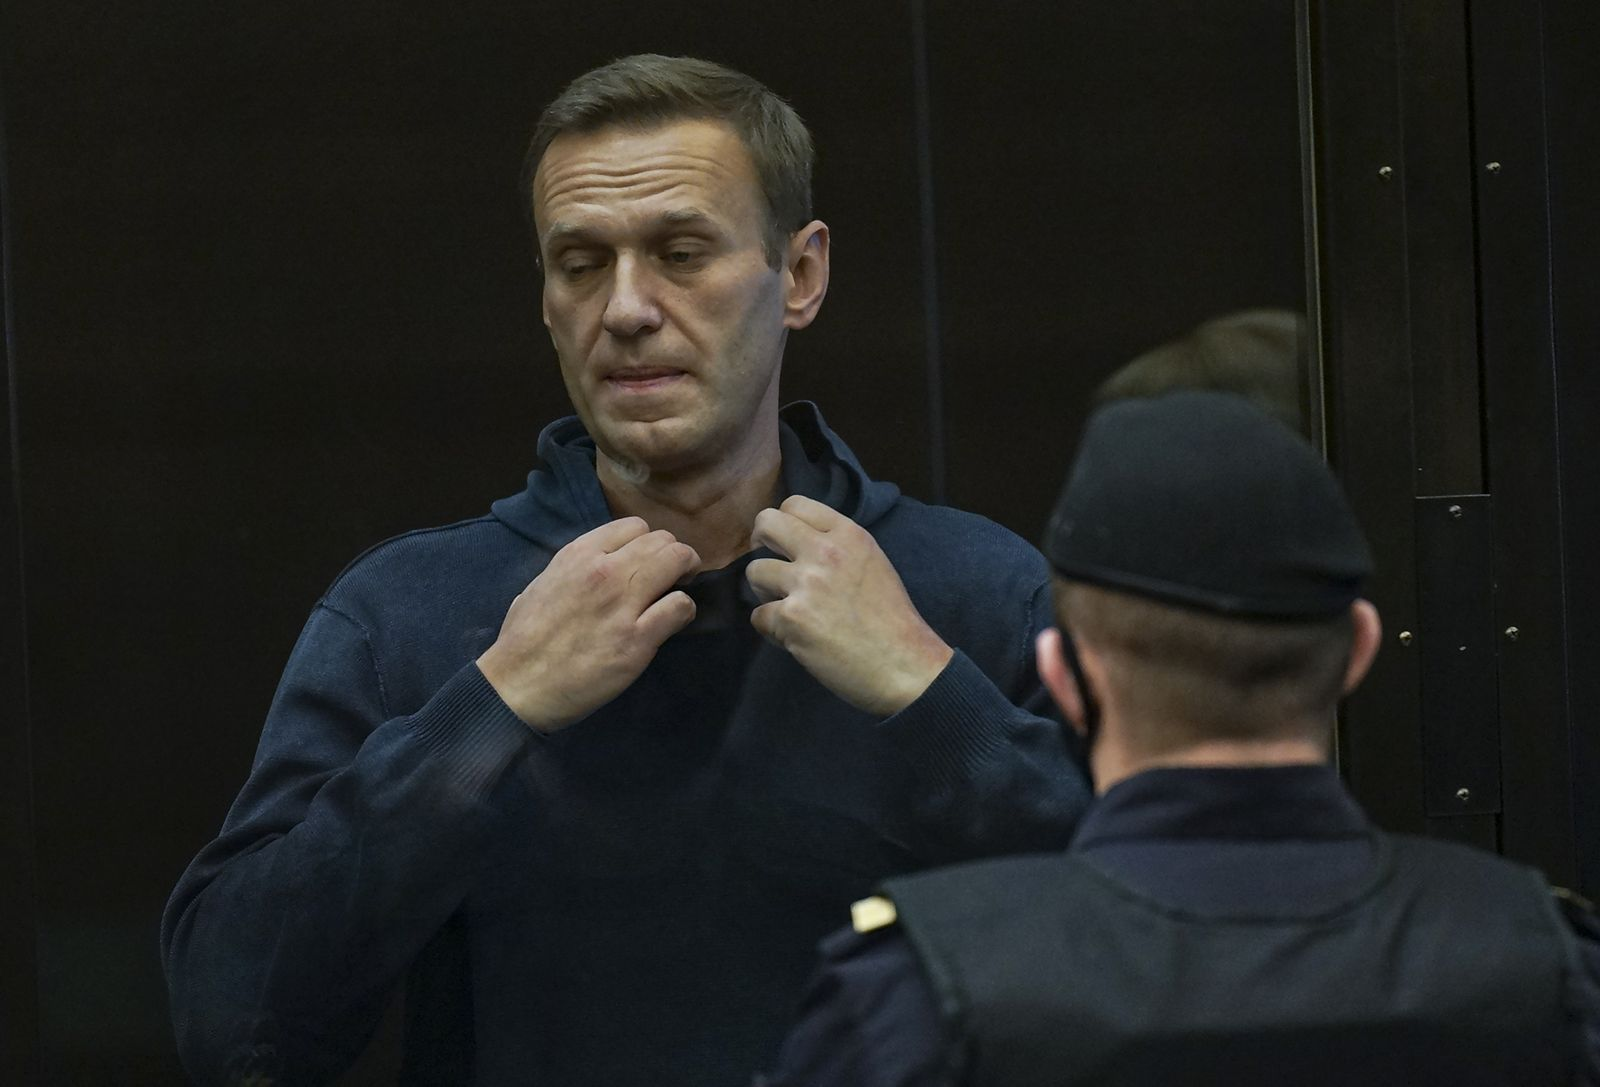 The Moscow City Court consider the requirement of the Federal Penitentiary Service to replace Navalny's suspended sentence with a real one, Russian Federation - 02 Feb 2021